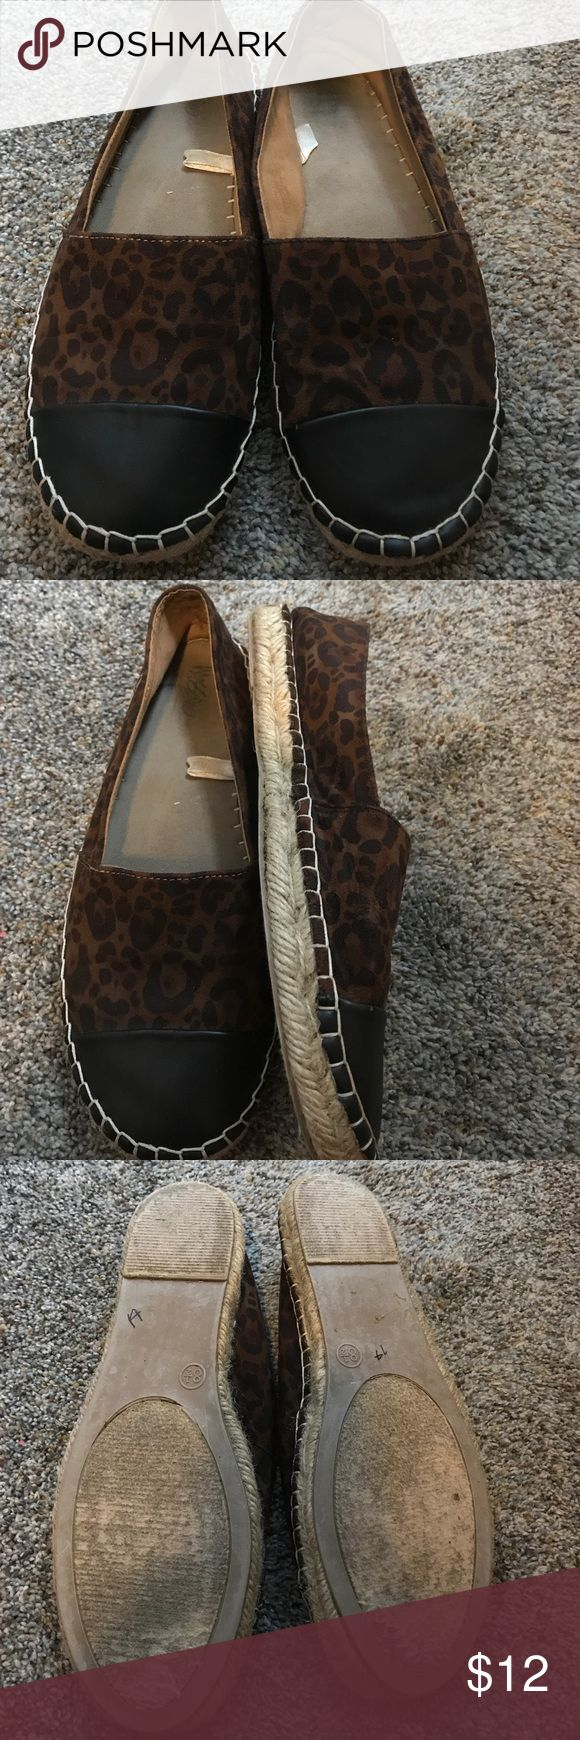 Brown animal print espadrille flats size 8.5 Mossimo animal print espadrille flats. Black faux leather toe. Preowned condition Mossimo Supply Co. Shoes Flats & Loafers